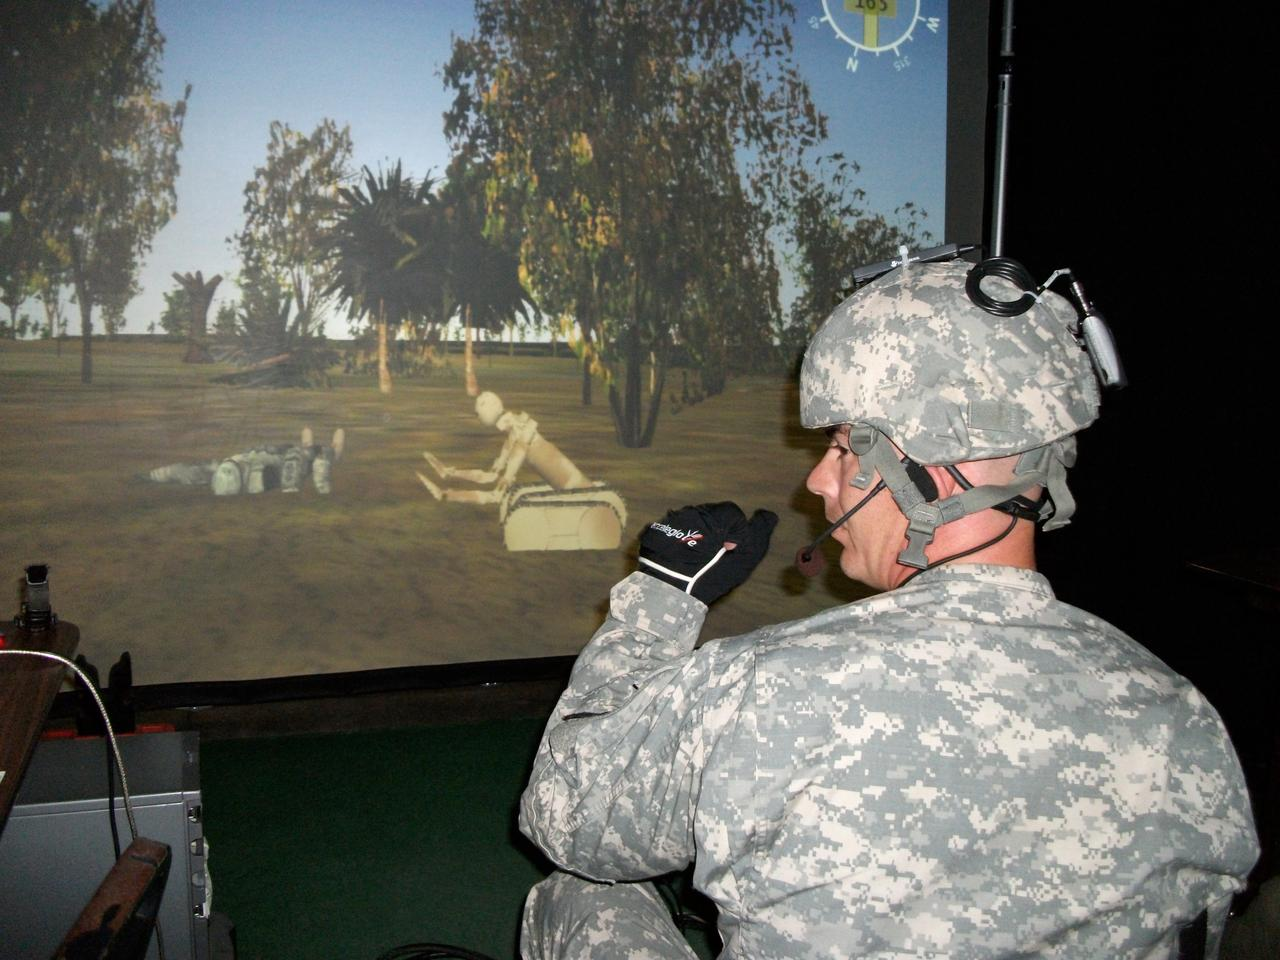 The iGlove enables a warfighter to easily command and control robotic devices through sensors and controllers built into a standard-issue glove (Image: TATRC)